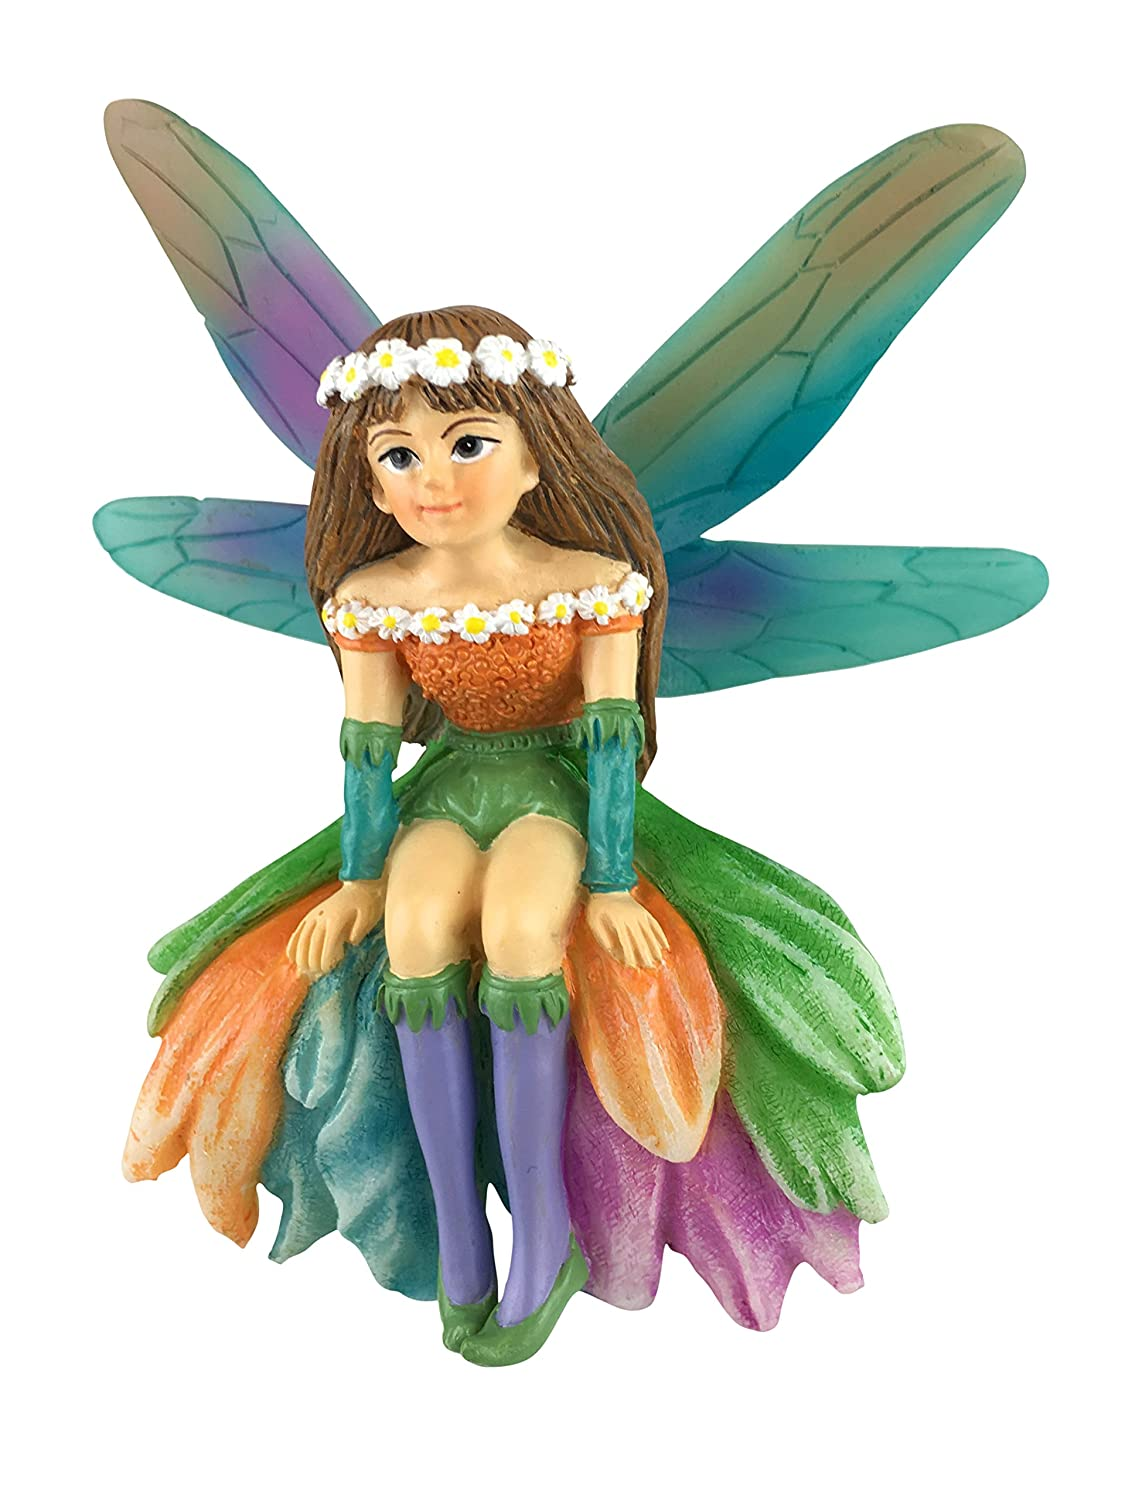 GlitZGlam Daisy The Gorgeous Miniature Fairy for Your Fairy Garden/Miniature Garden